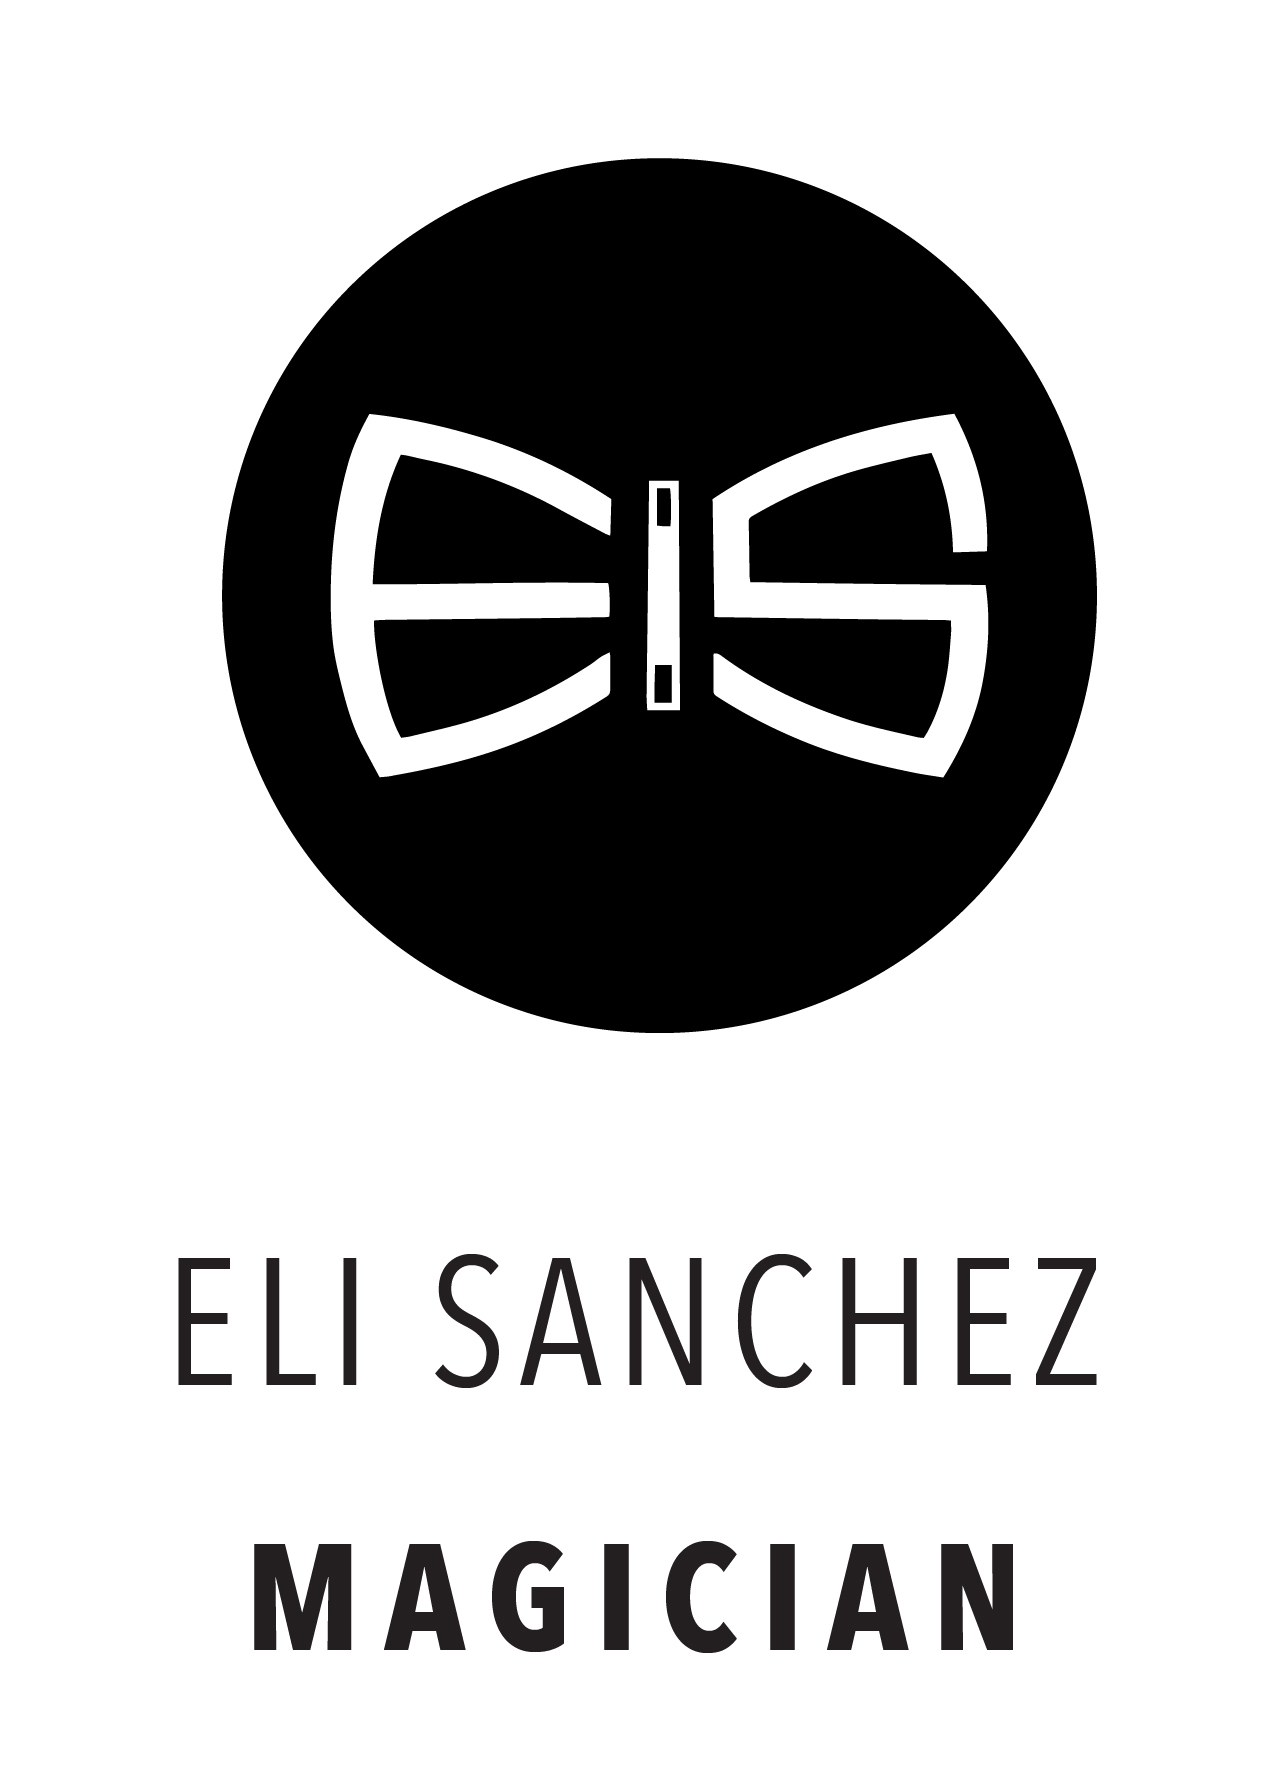 Eli Sanchez Magic